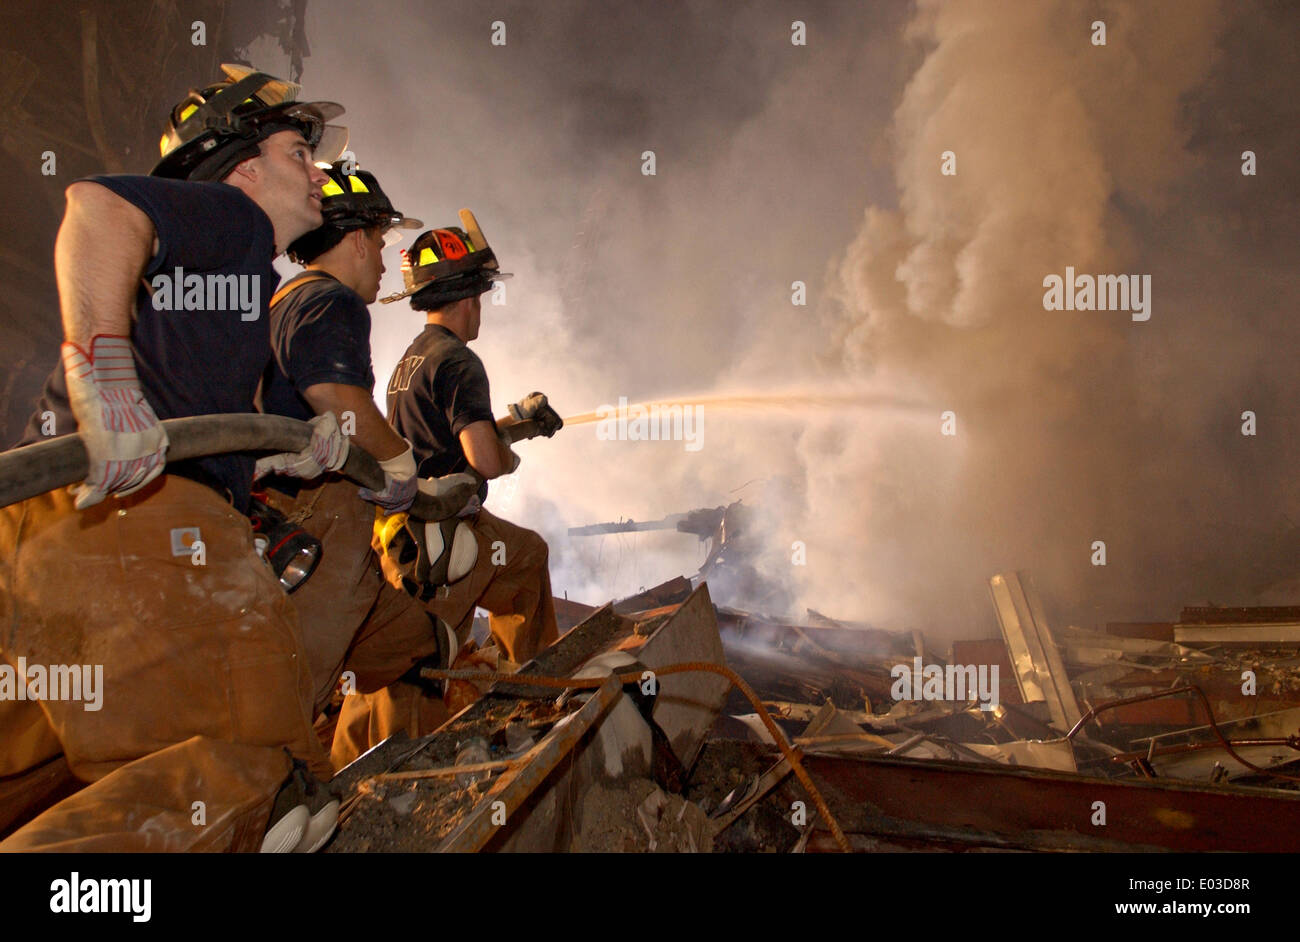 New York City Firemen battle fires amongst the wreckage of the World Trade Center in the aftermath of a massive terrorist attack which destroyed the twin towers killing 2,606 people September 19, 2001 in New York, NY. - Stock Image